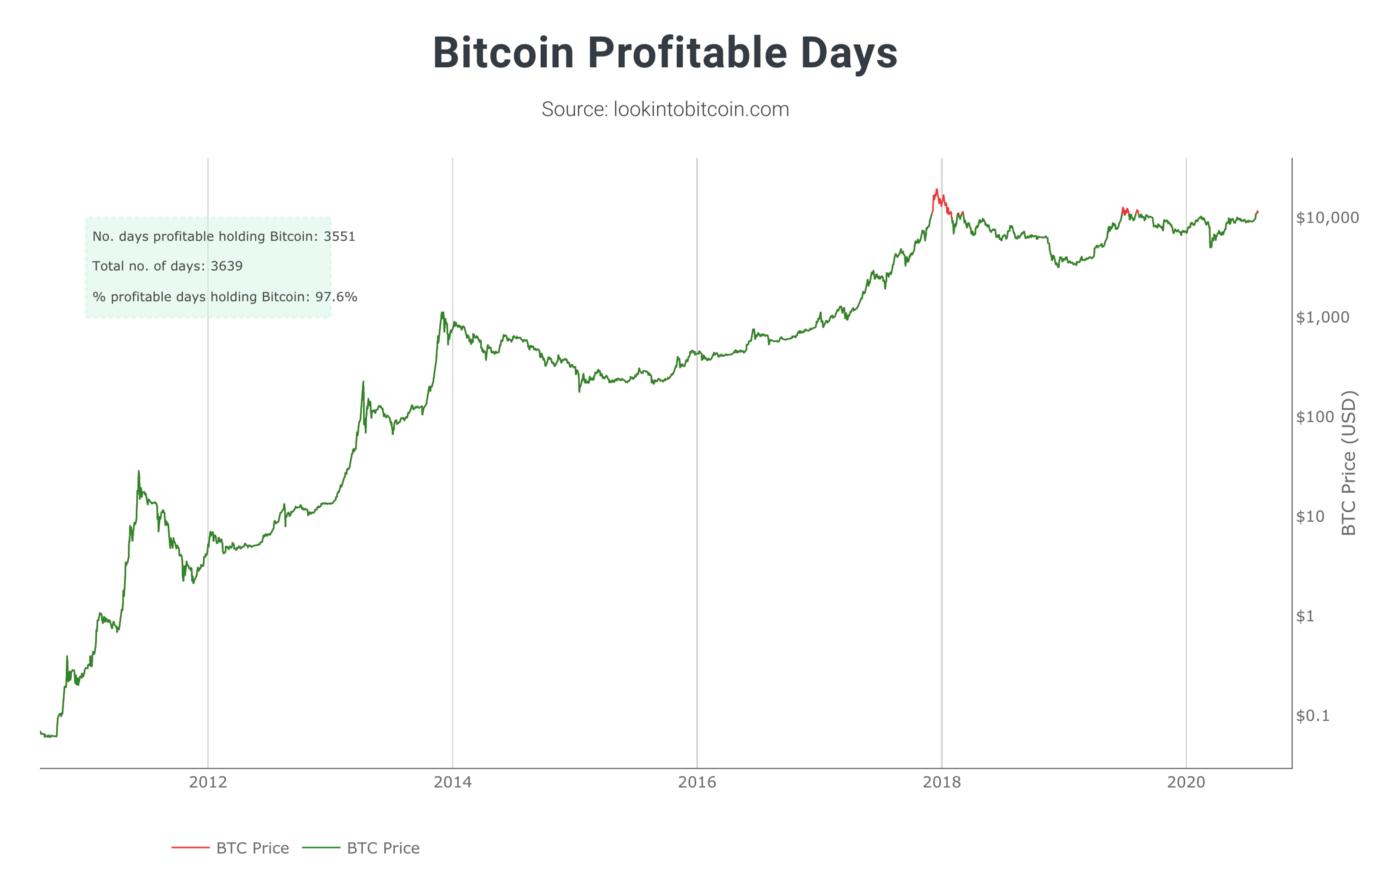 HODLing Bitcoin has been a profitable strategy over 97% of the time since Bitcoin's inception